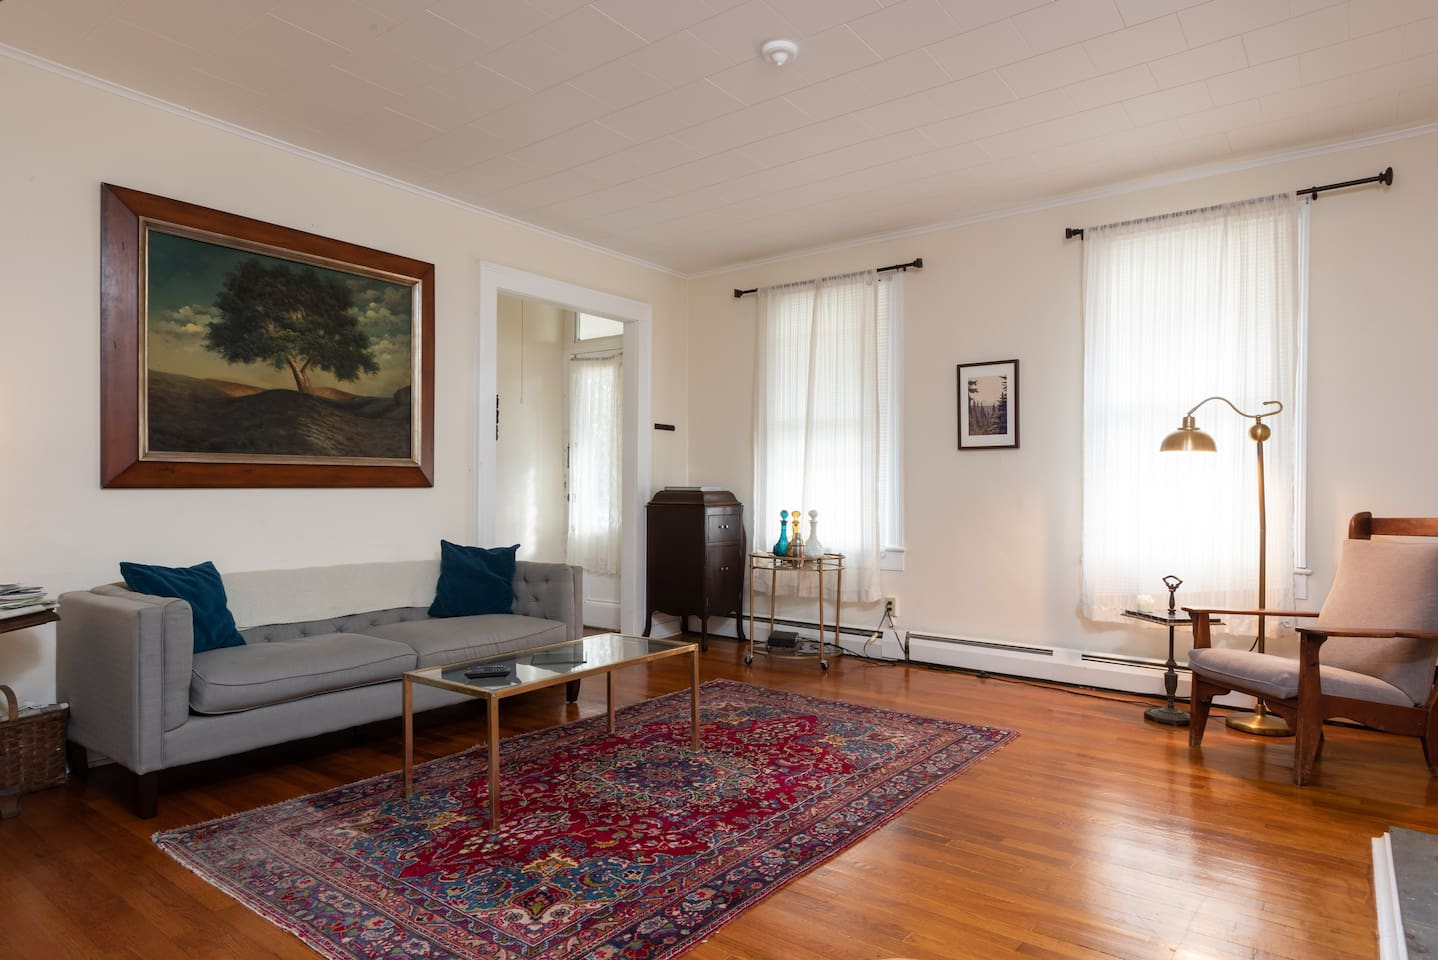 Welcome to our beautiful historic Hudson home on Columbia Street, 1 block to Warren.  Filled with both local antiques and modern conveniences and comforts, this living space will be the perfect place to unwind after a long day on the town.